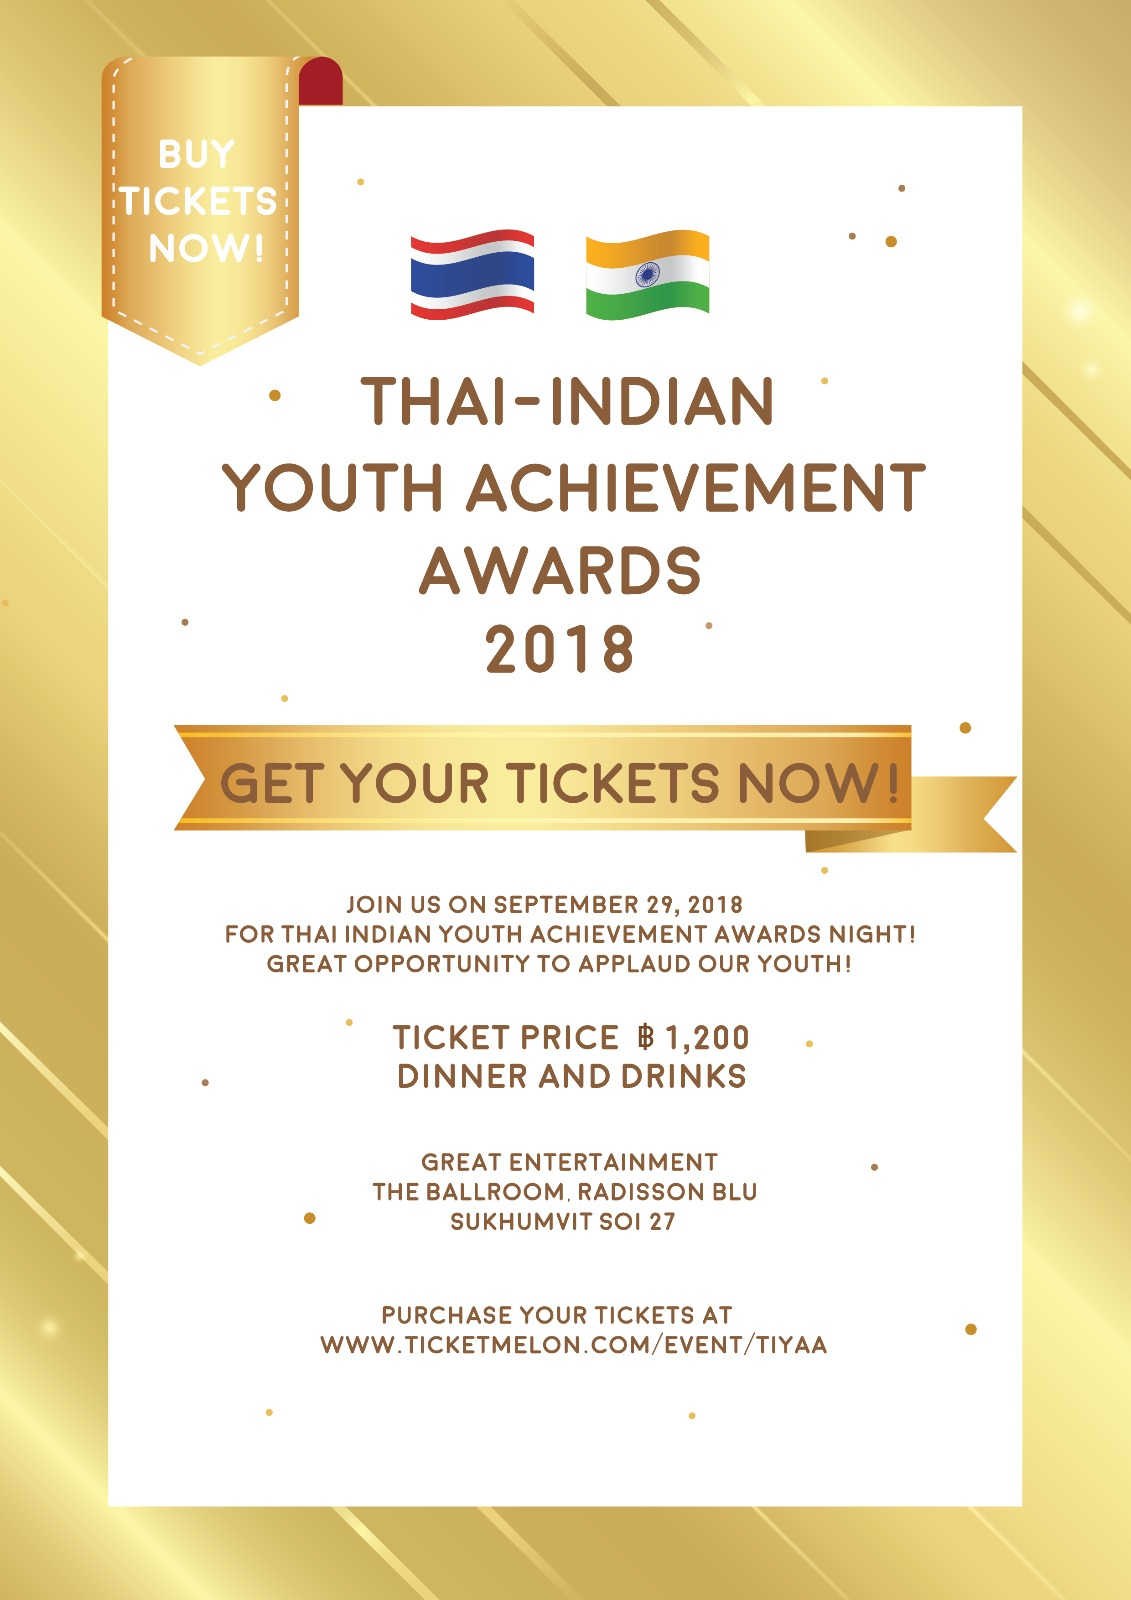 THAI-INDIAN YOUTH ACHIEVMENT AWARDS